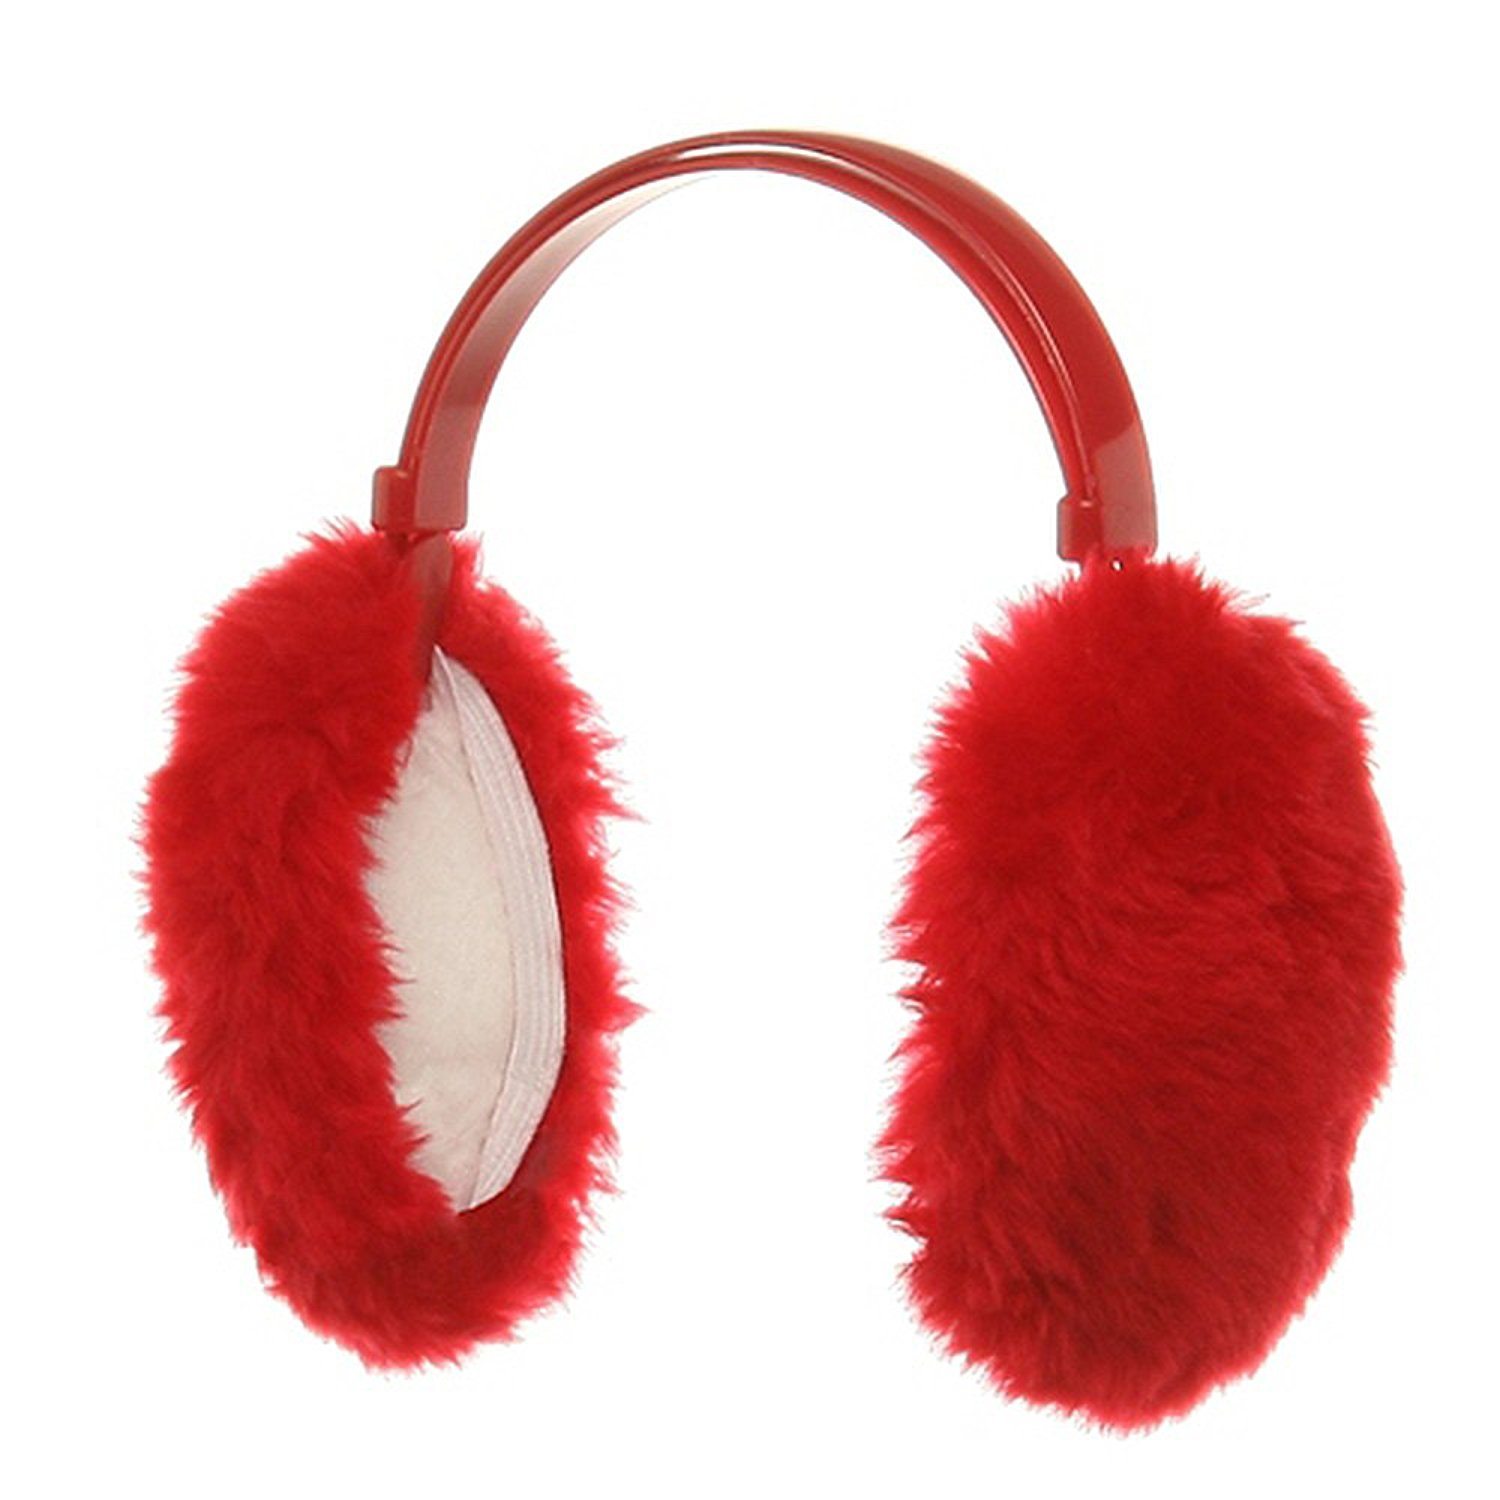 Earmuffs photo